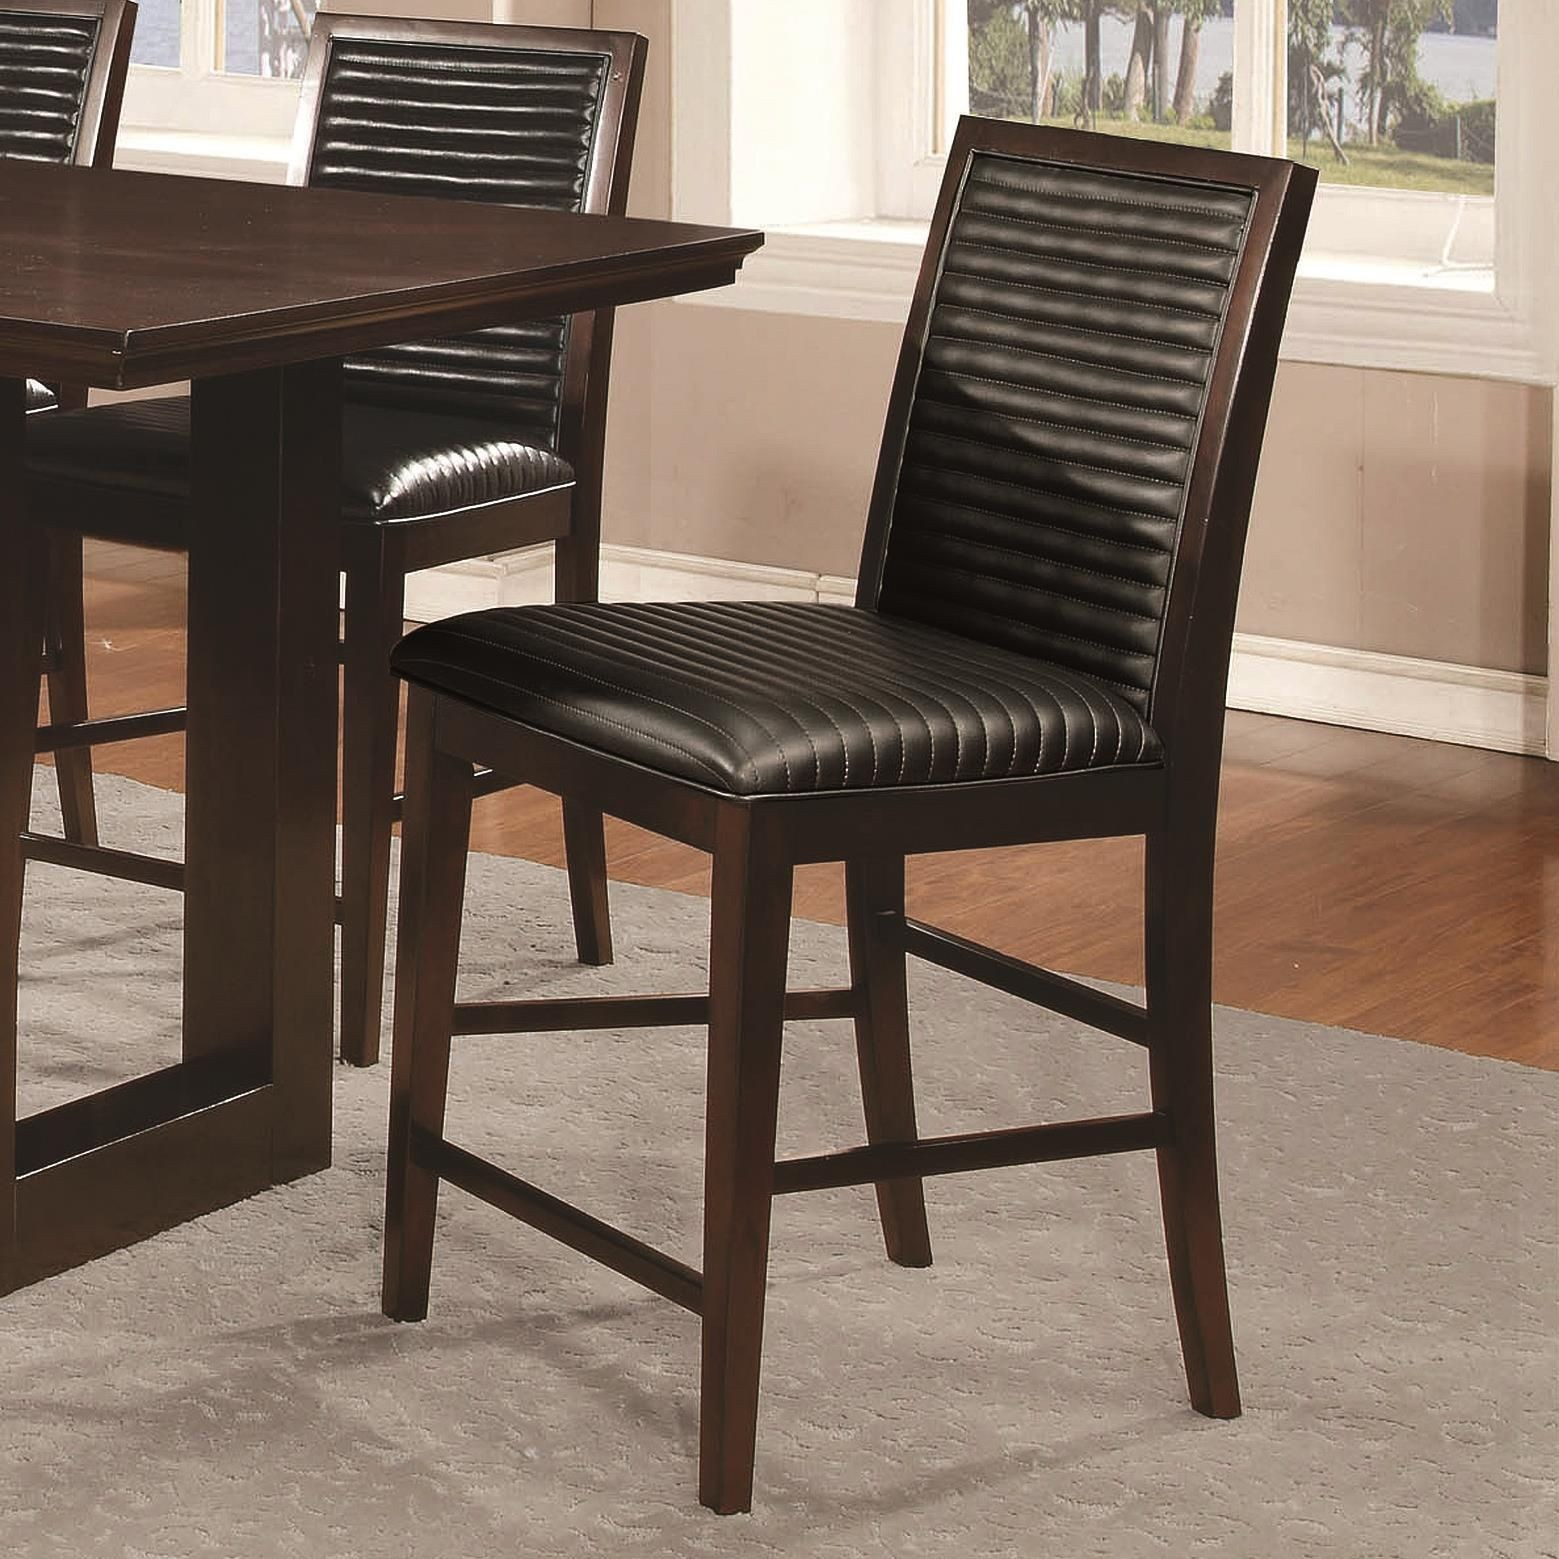 Chester Upholstered Counter Height Chair Set of 2 from